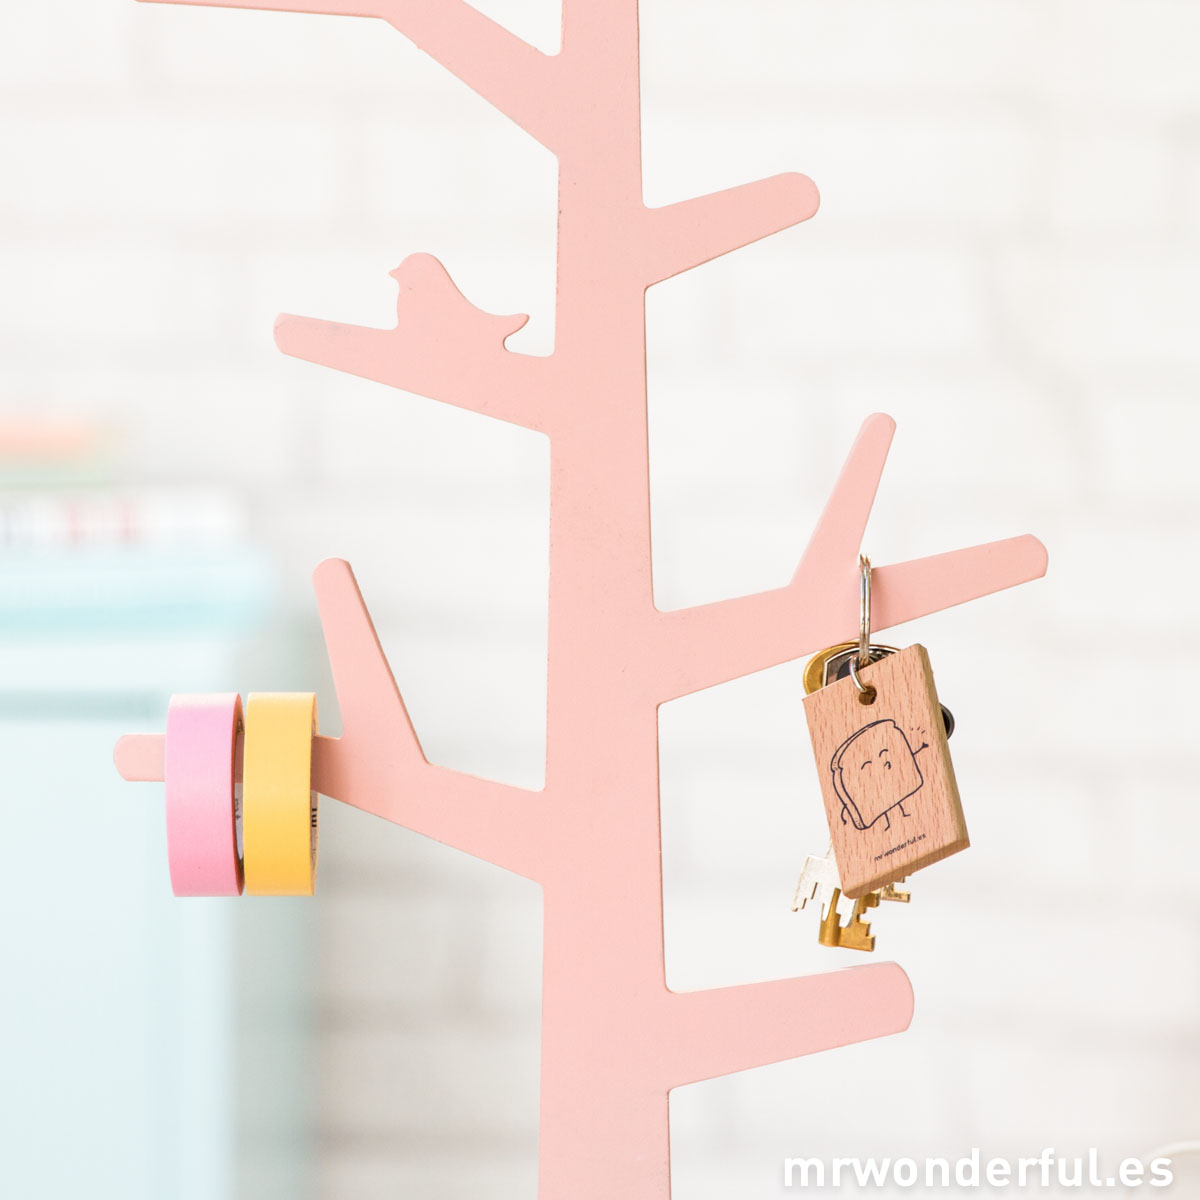 Mr.Wonderful árbol de madera rosa para decorar